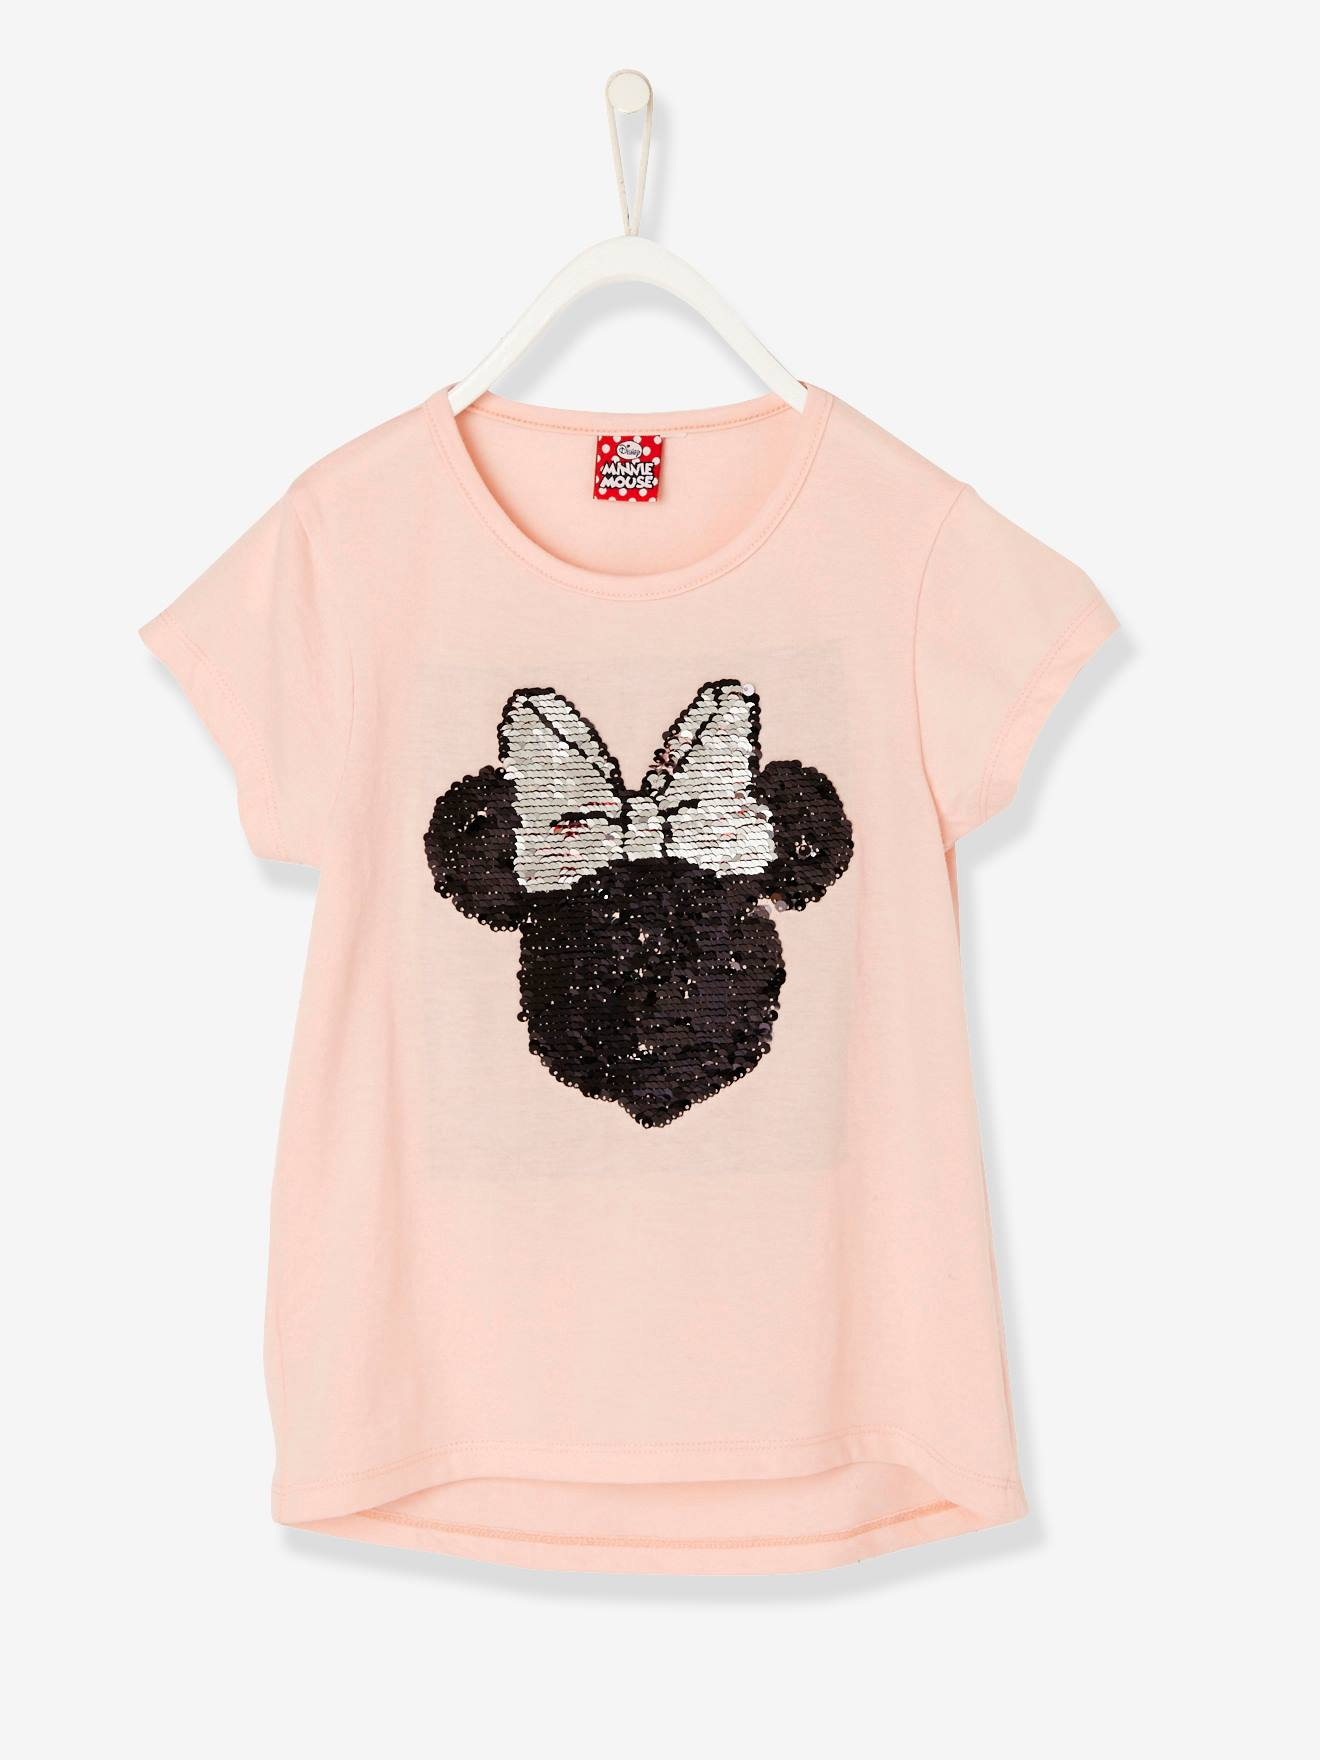 144c926b79061 tee shirt fille sequins - www.goldpoint.be